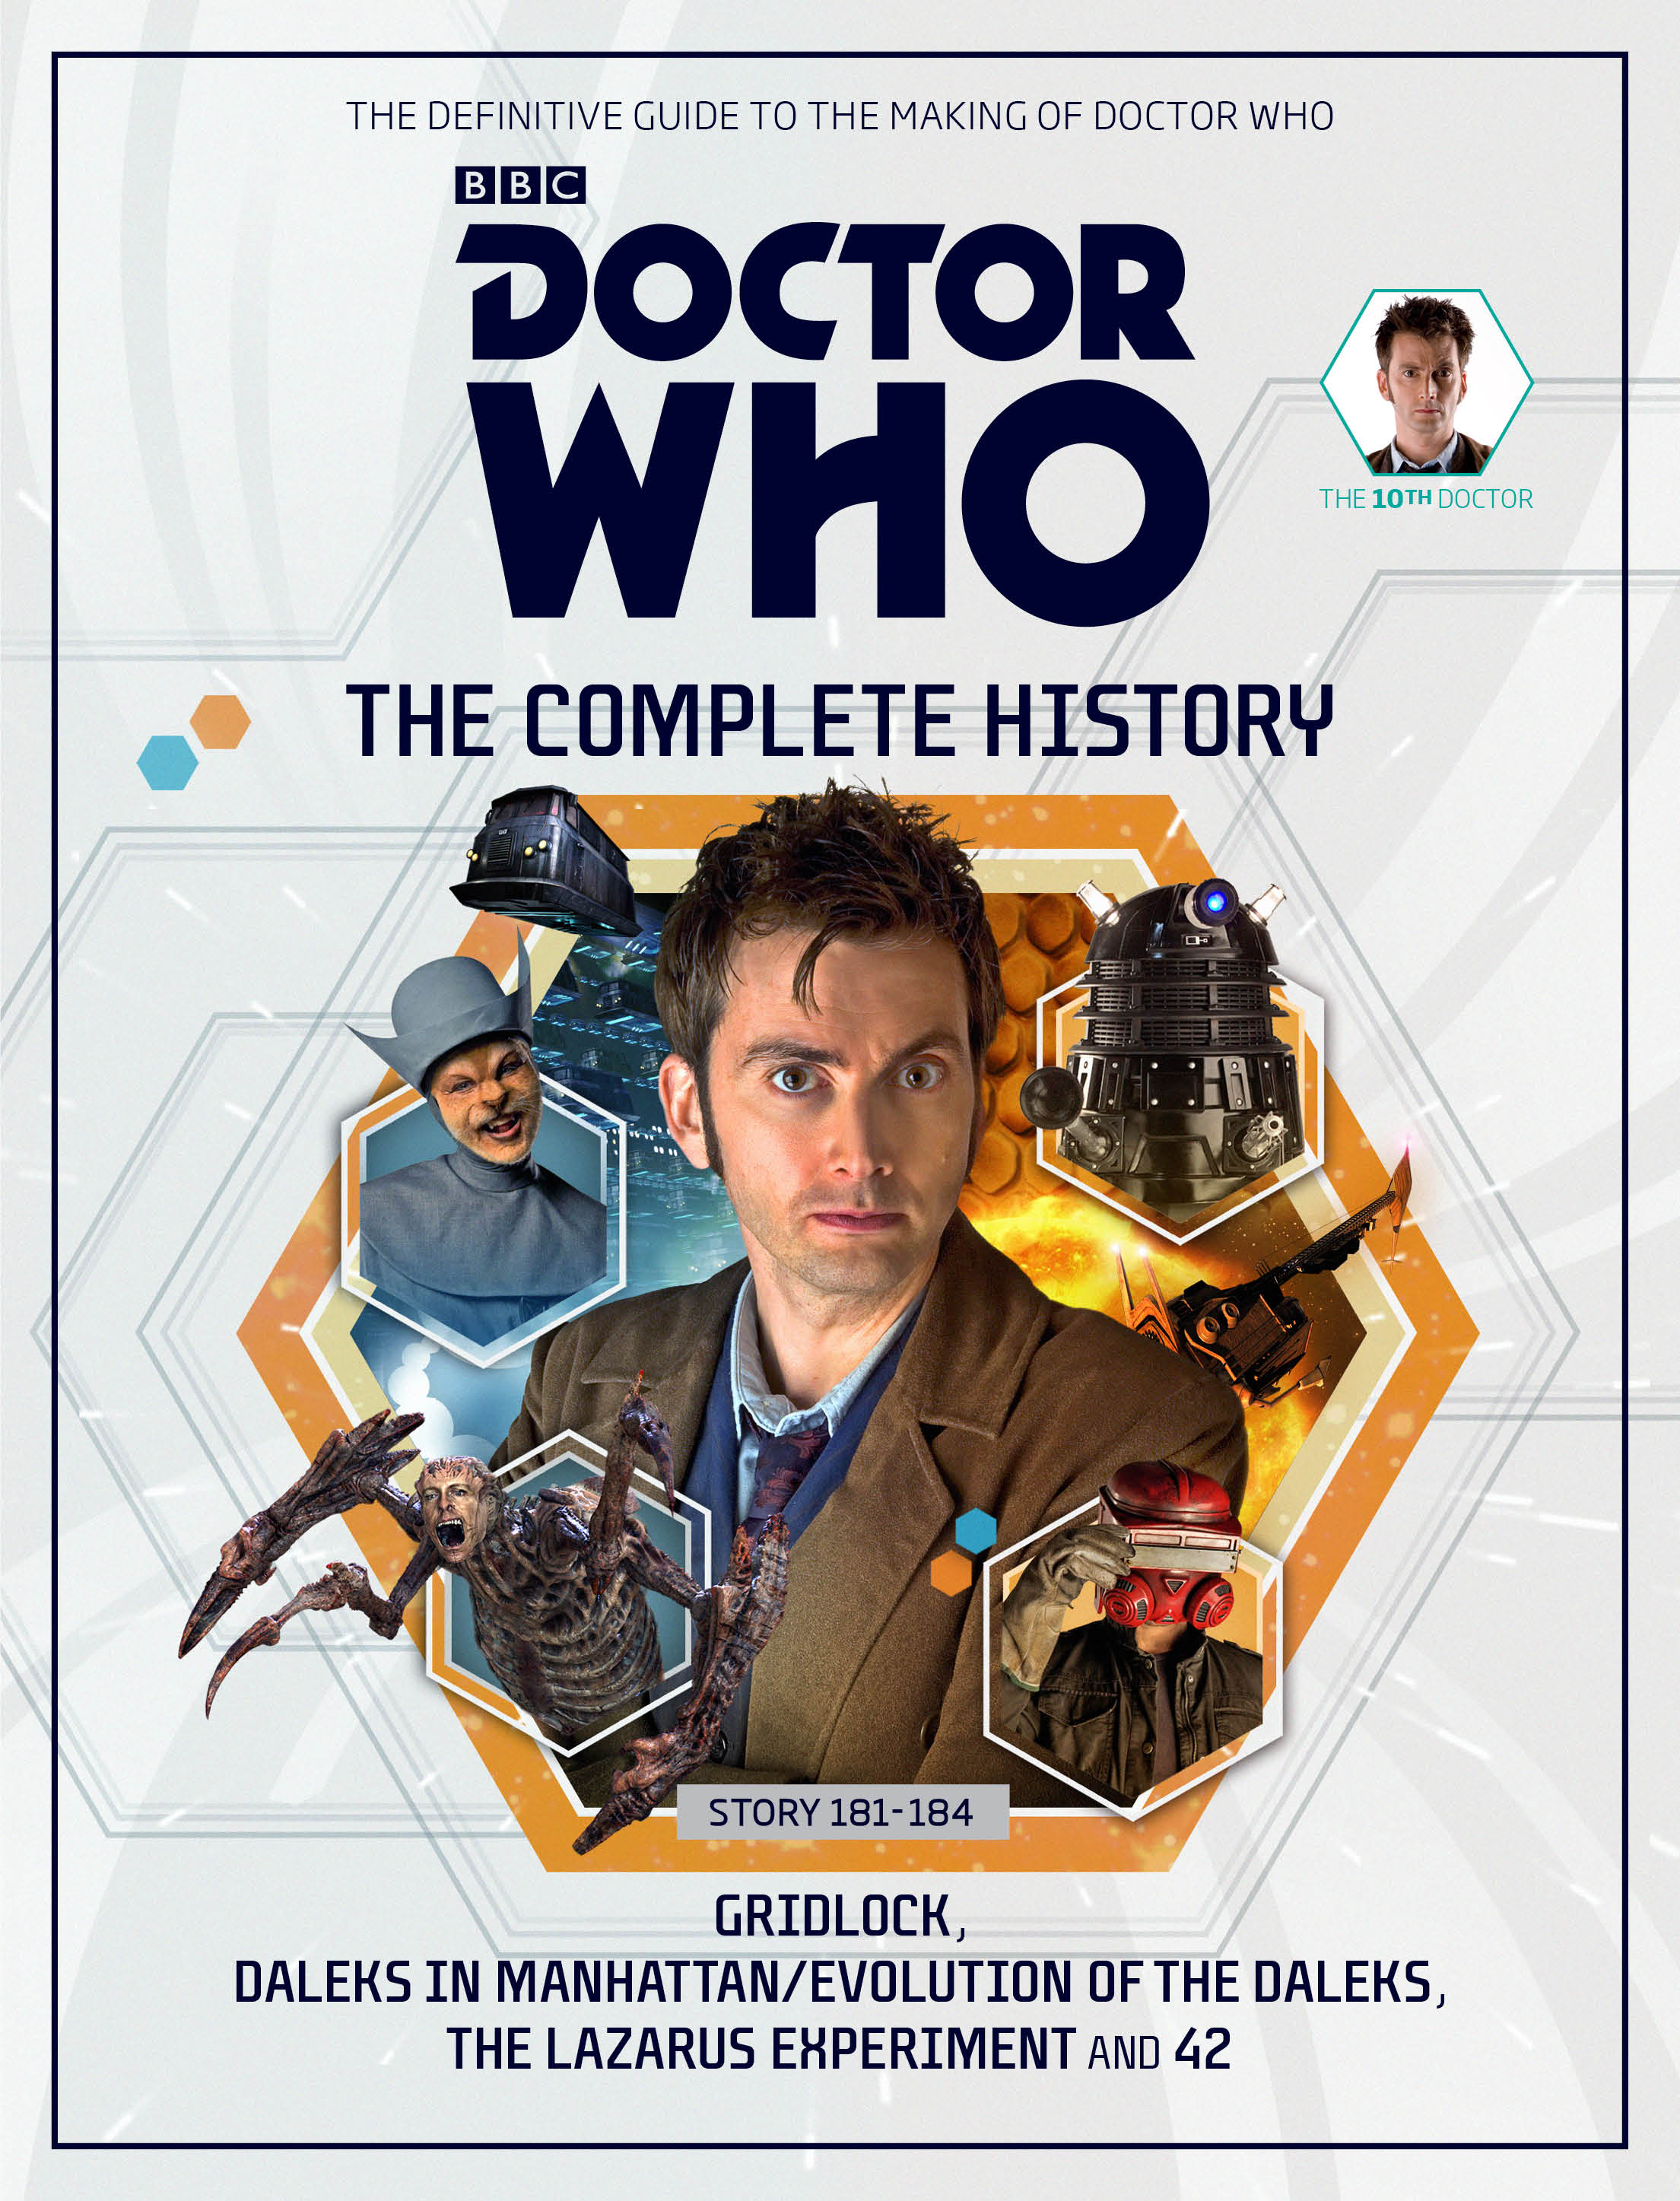 Doctor Who: The Complete History - Issue 1 (Credit: Hachette/BBC/Panini)